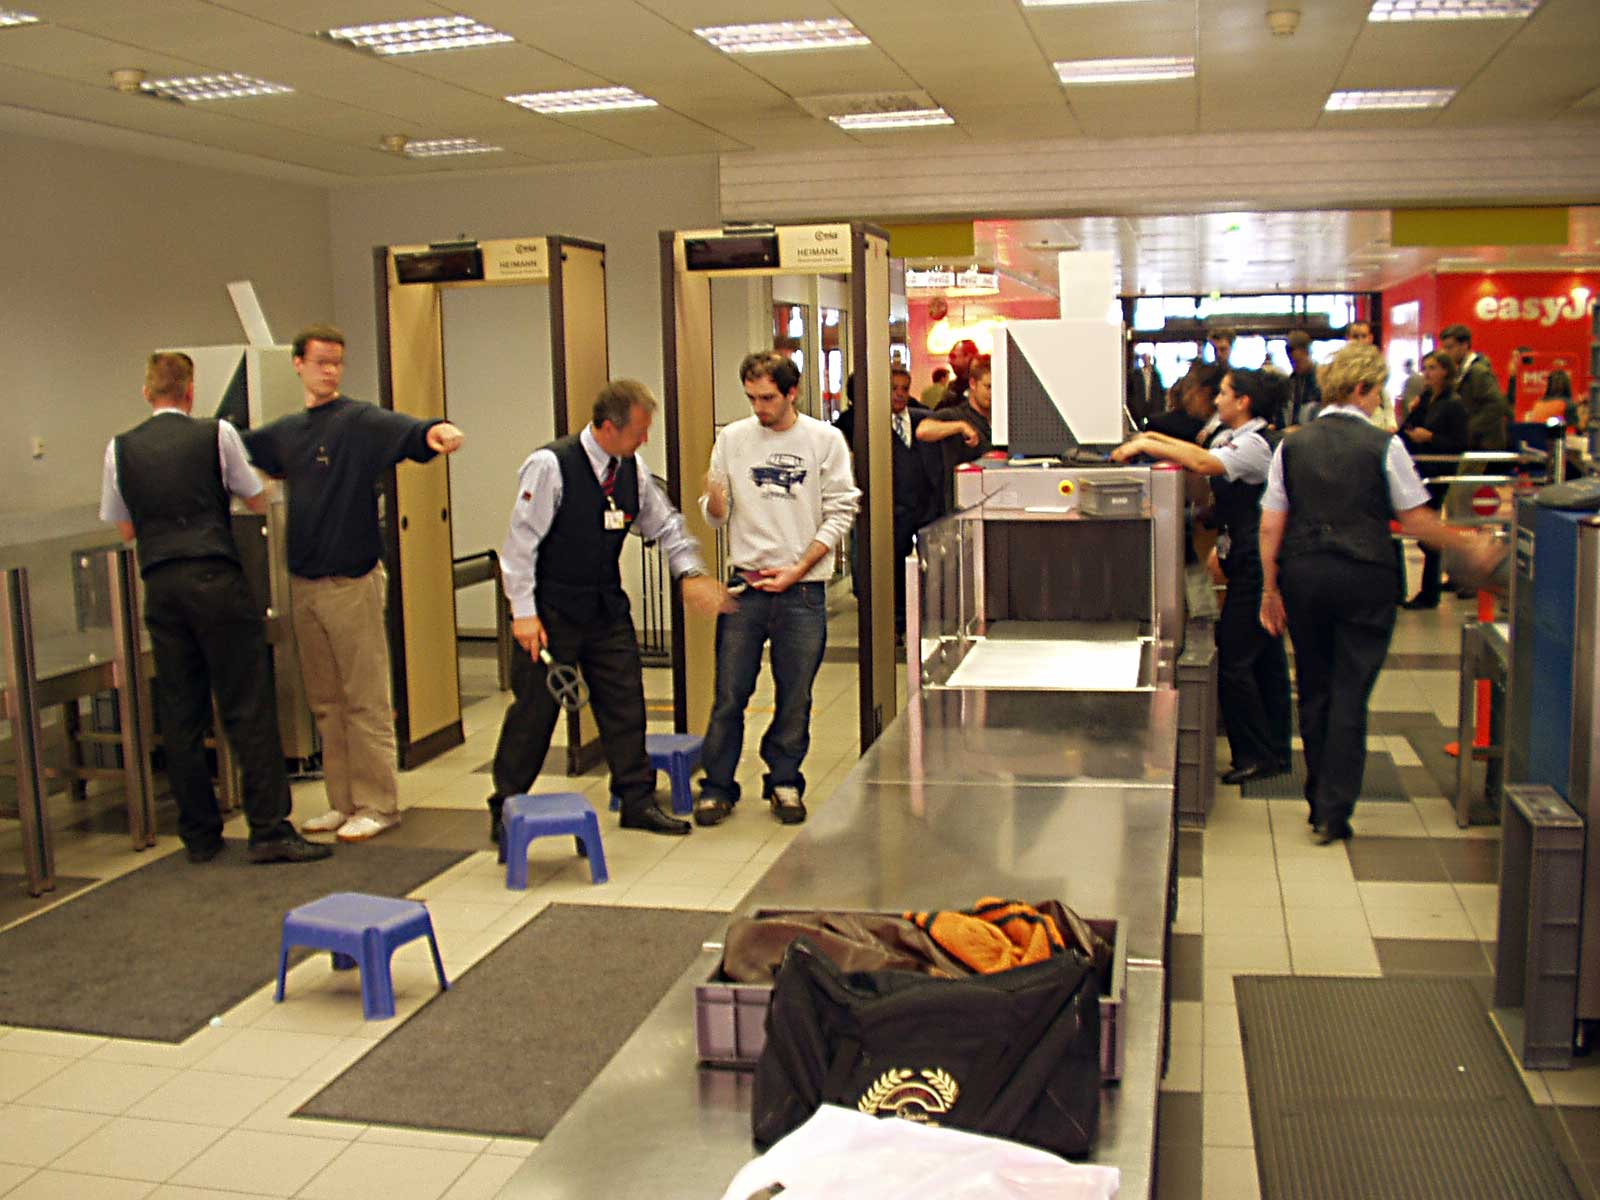 airport security how the use of Security camera setup advice for airport terminals position cameras at all entrances and exits in order to capture footage of everyone who passes through the airport monitor all open areas to get continuous overall footage of airport activity.